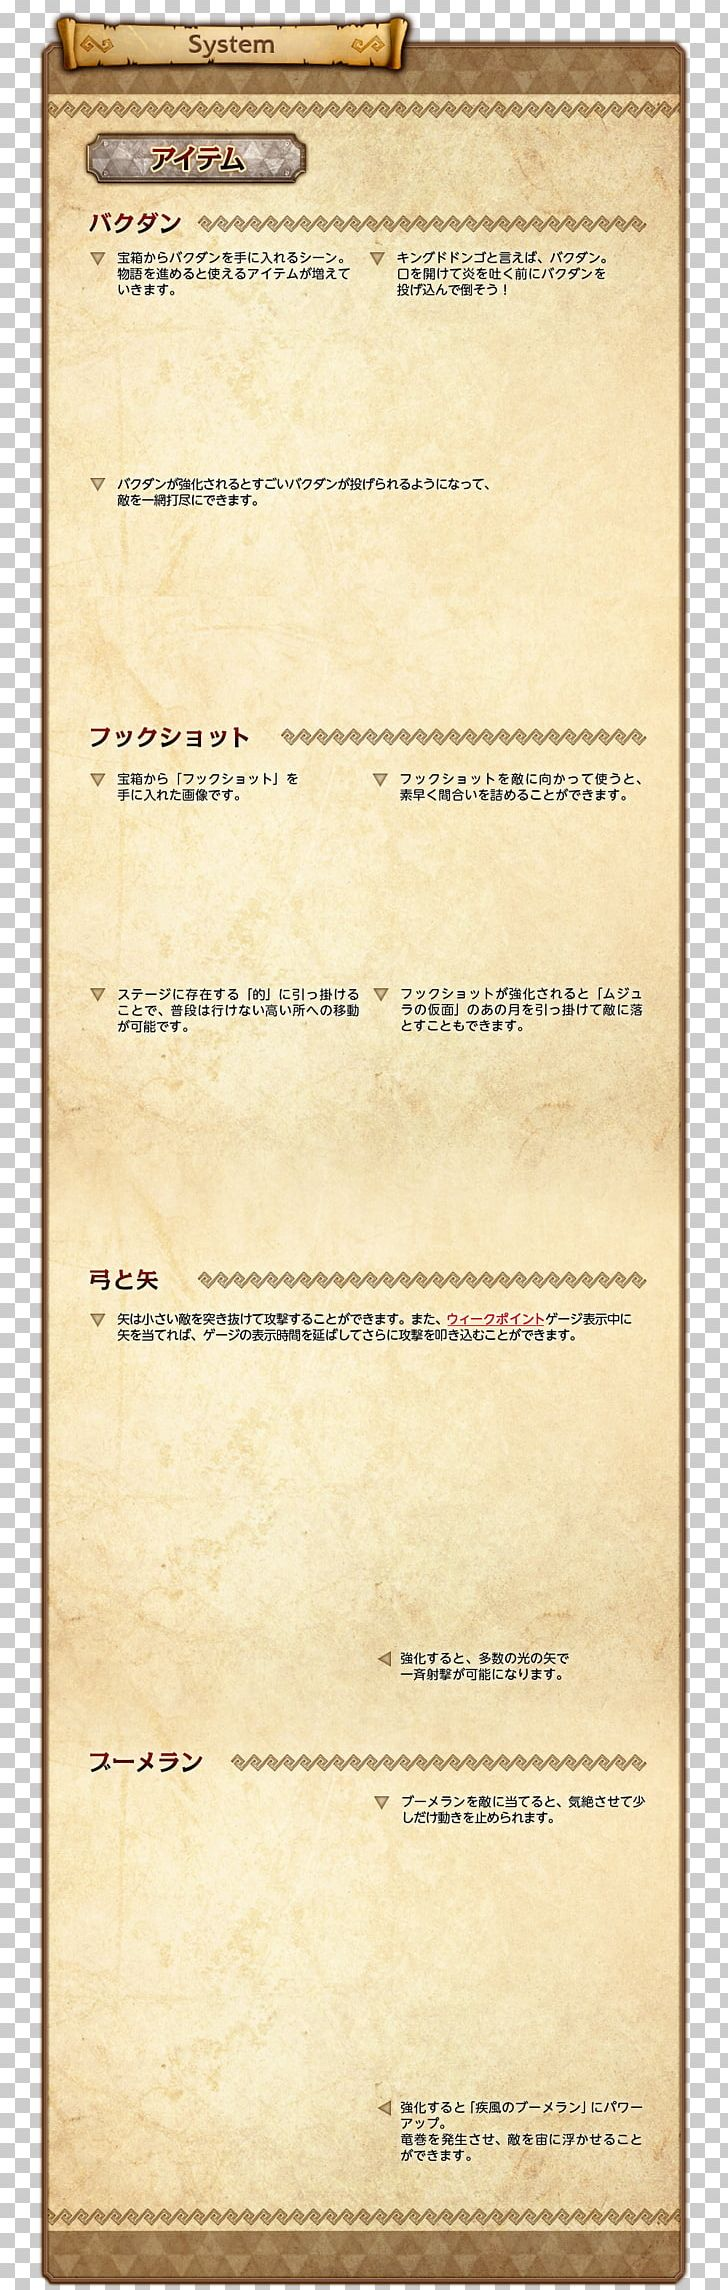 Letter PNG, Clipart, Document, Item, Letter, Others, Paper Free PNG Download